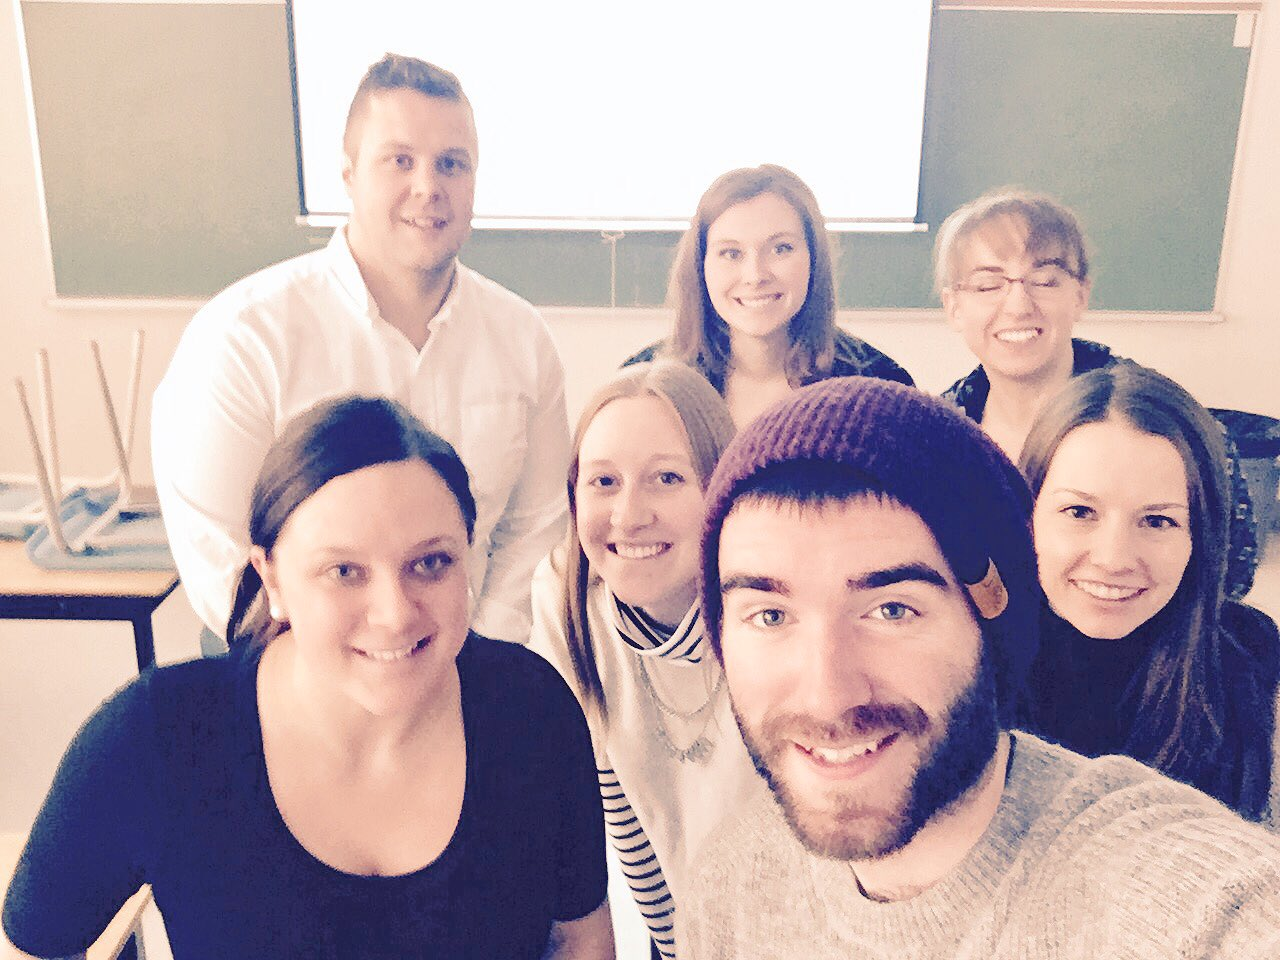 The @UNB crew at the online #HESM16 conference! @higheredexperts https://t.co/xow7LVcliY